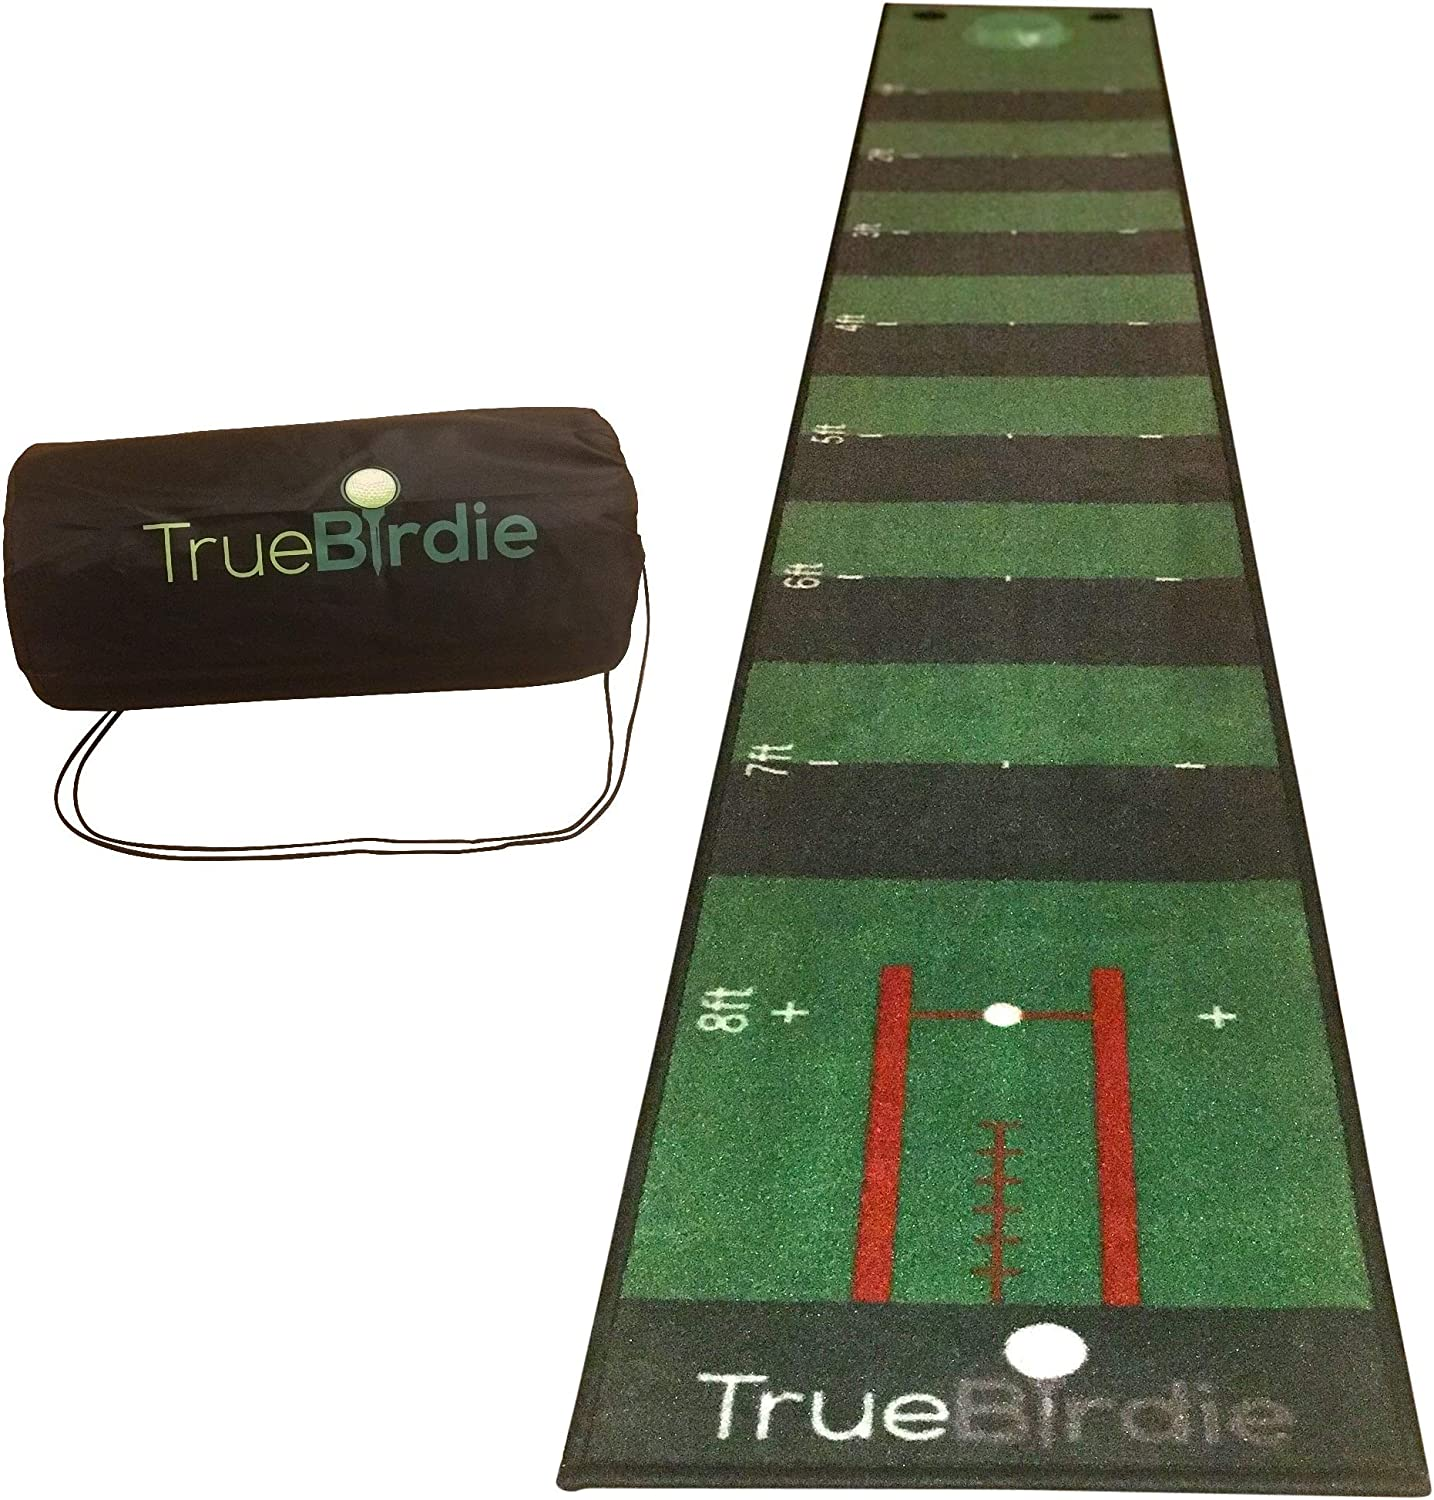 TrueBirdie Indoor Putting Green and Golf Mat with Travel Bag